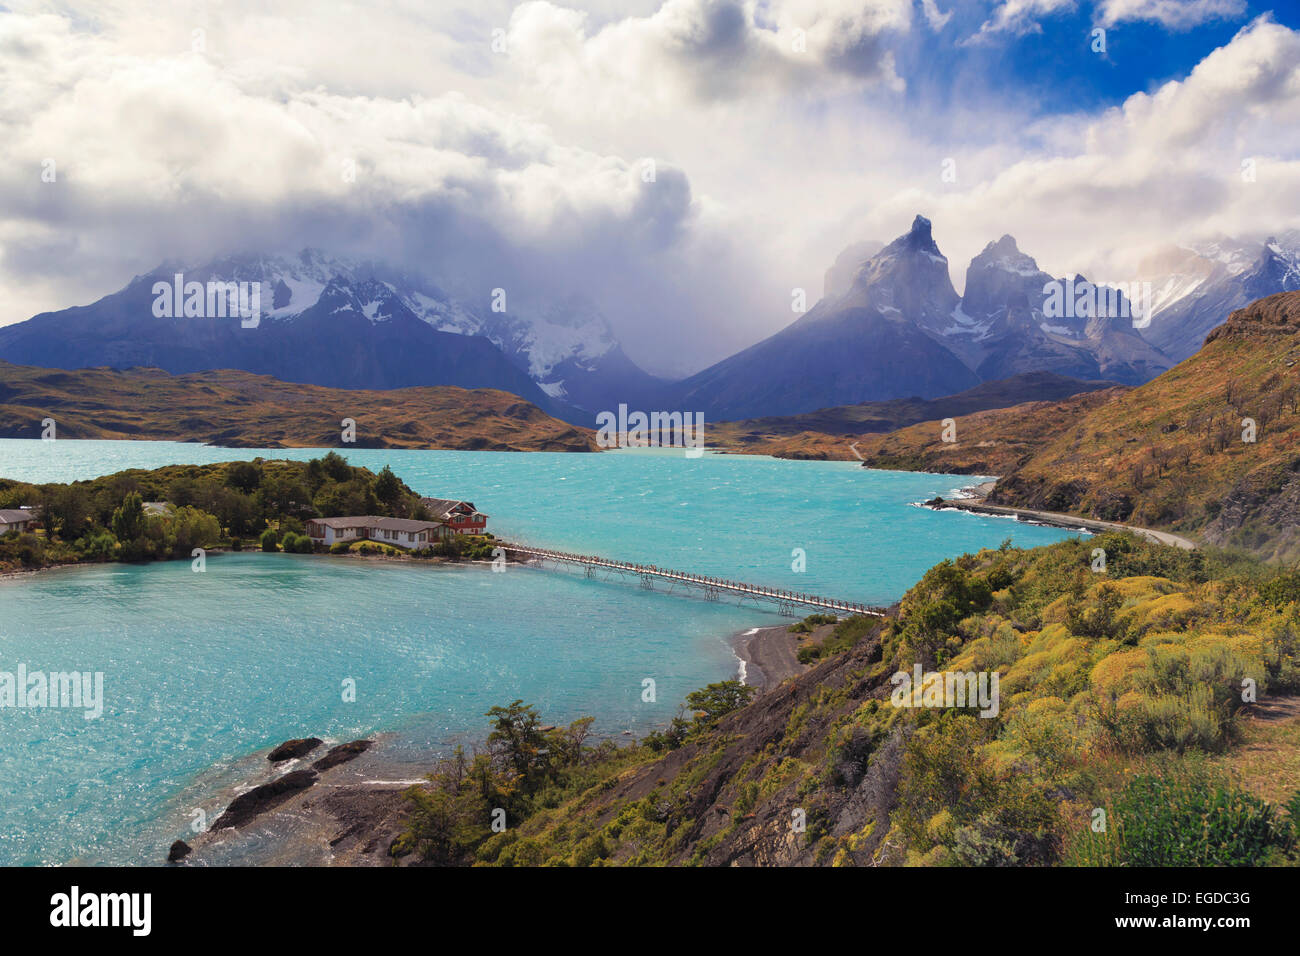 Le Chili, la Patagonie, le Parc National Torres del Paine (UNESCO Site), le lac de Peohe Photo Stock